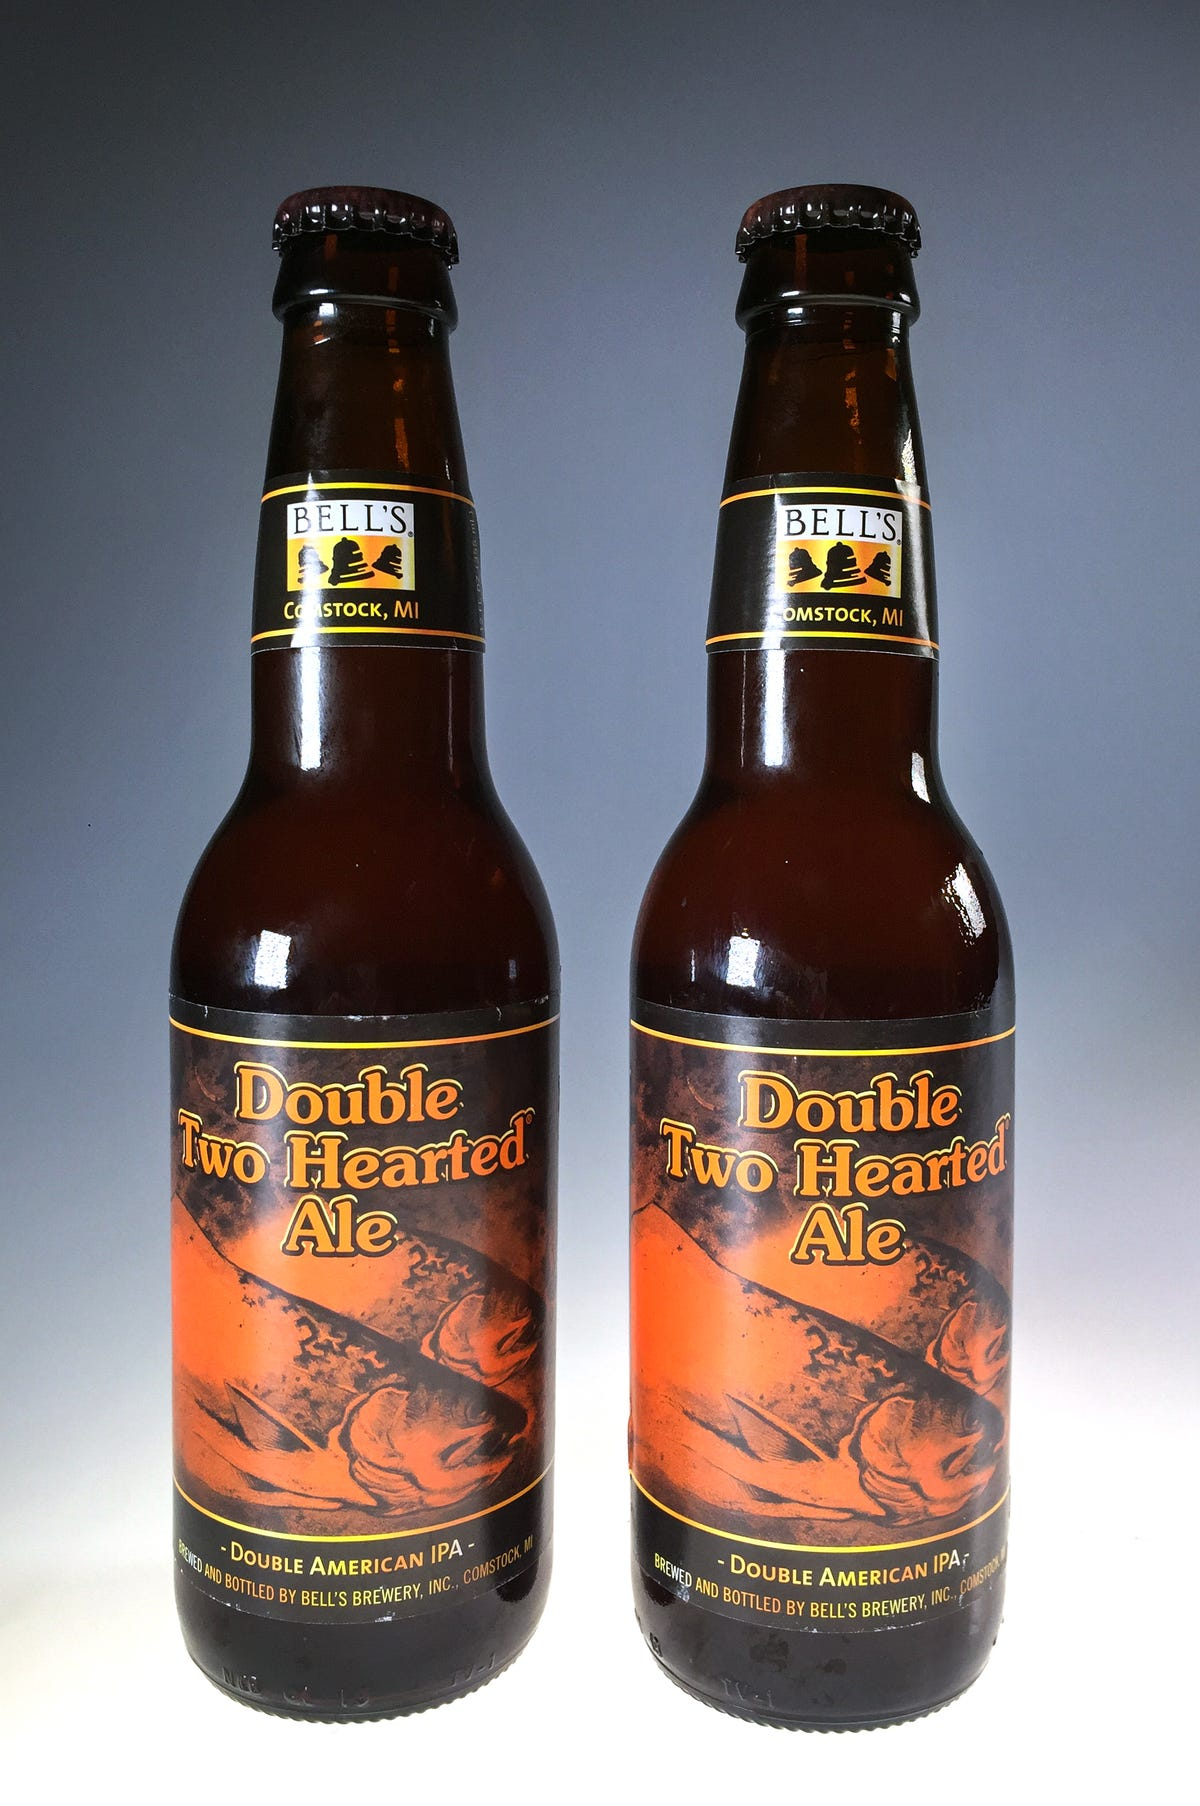 Bell's Double Two Hearted Ale is here, and it's powerful